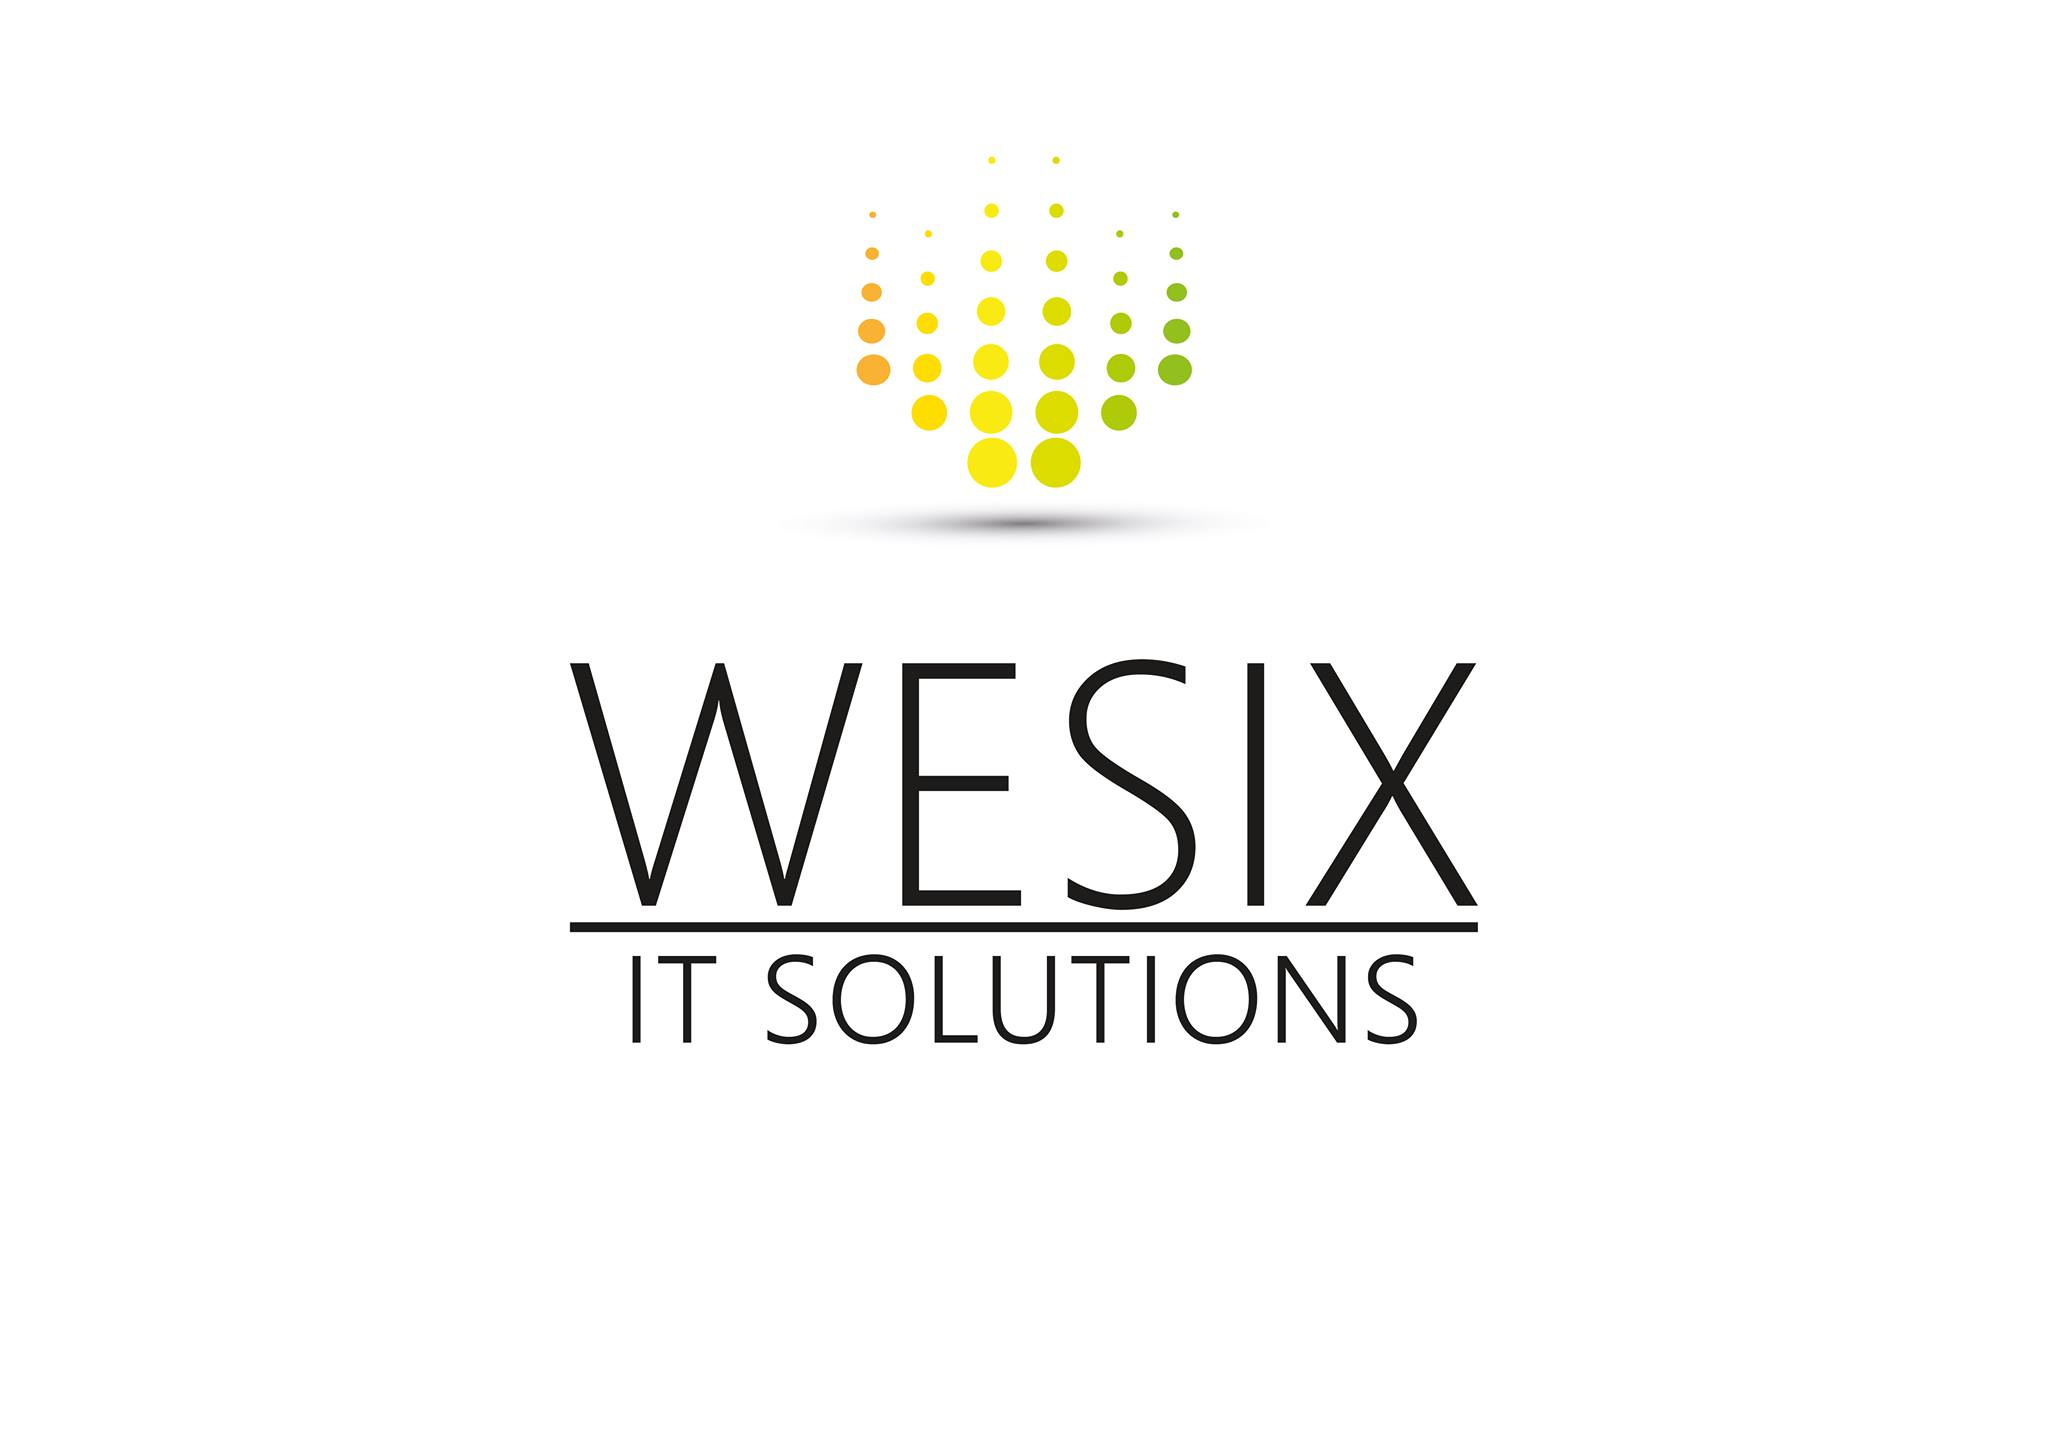 WESIX IT SOLUTIONS Job Openings